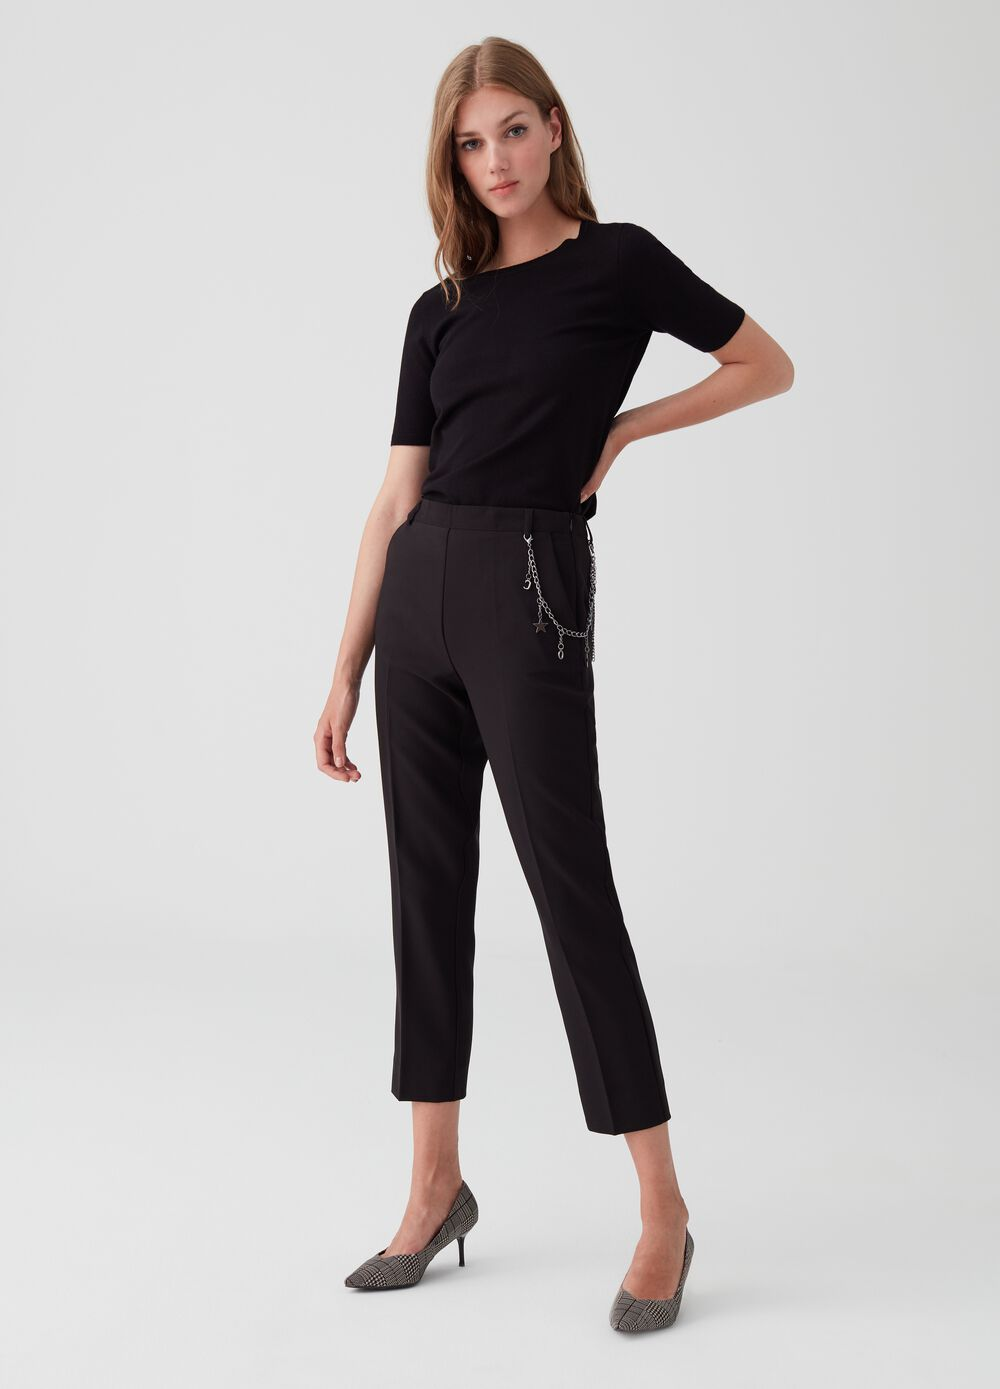 Stretch capri pants with pockets and chain at waist